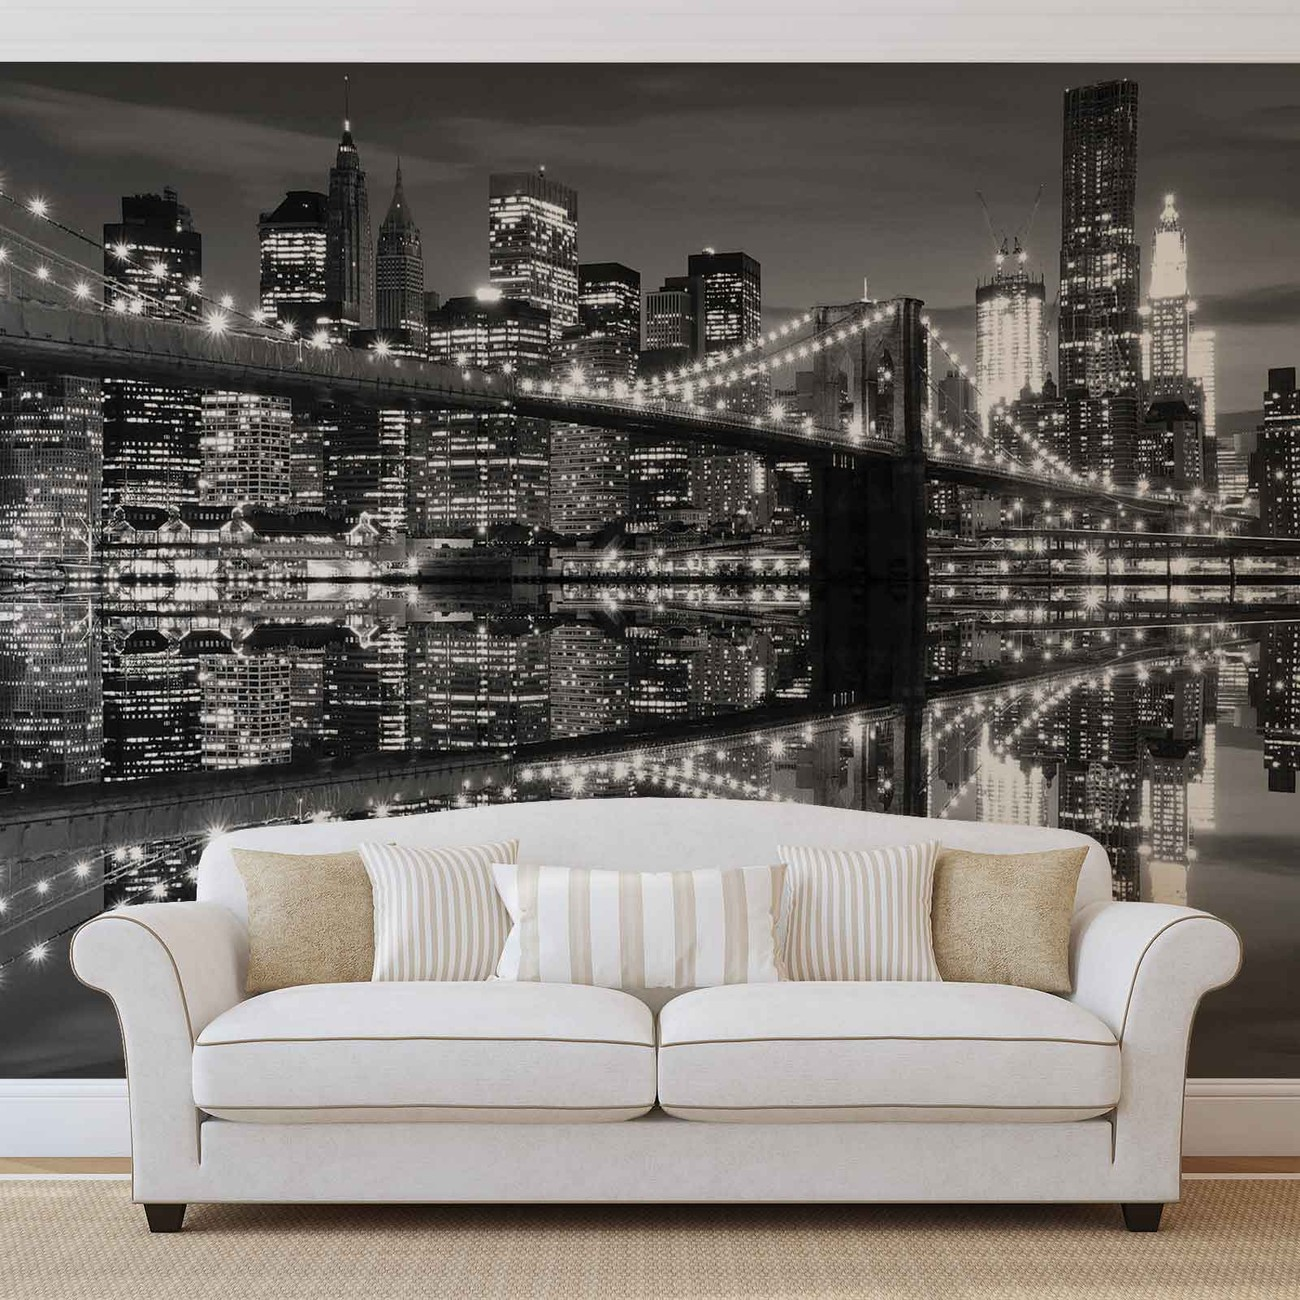 Muurposters New York.Koop New York Posters Van Europosters Nl